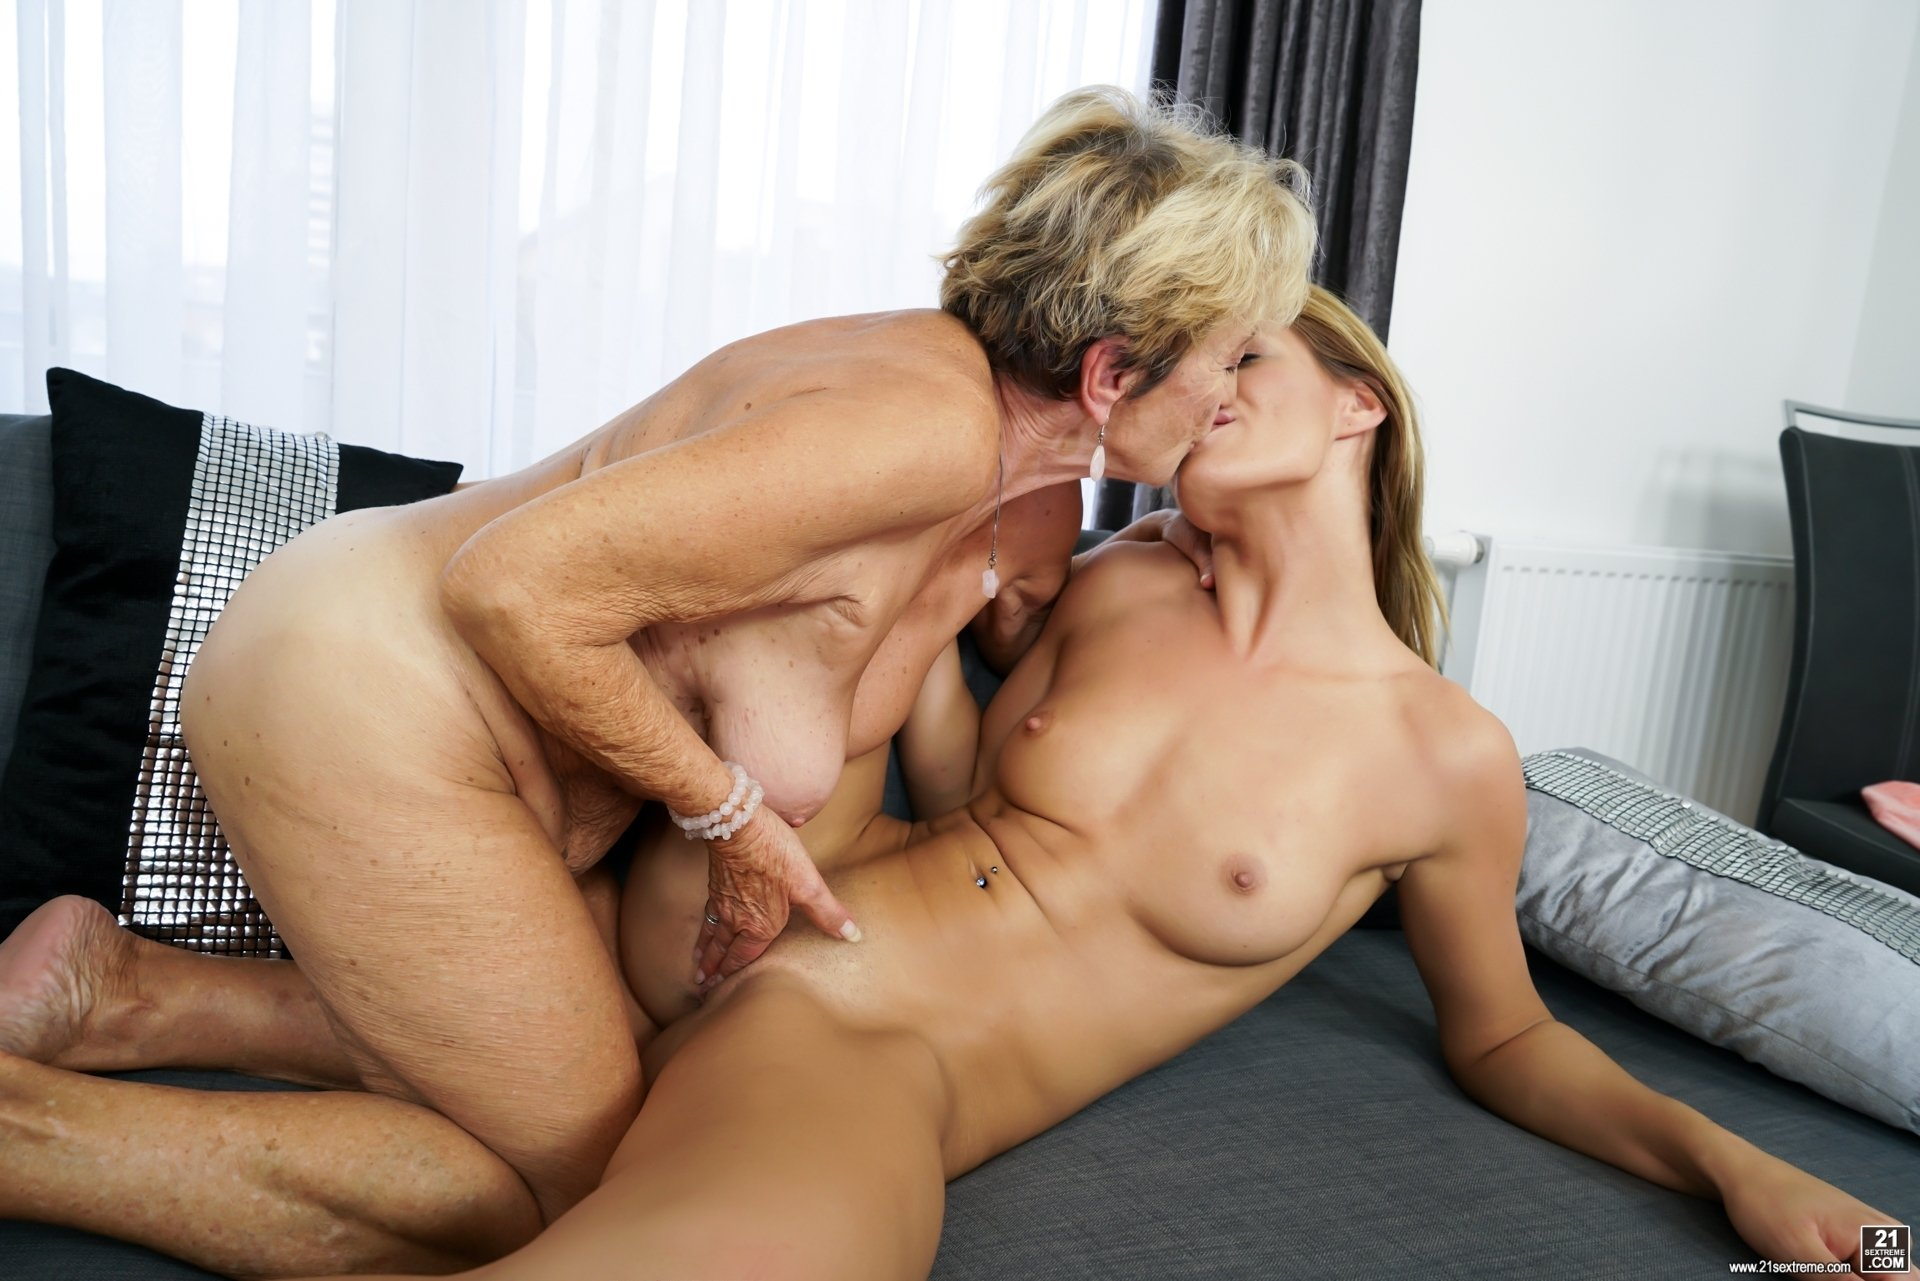 lesbian action xvideos